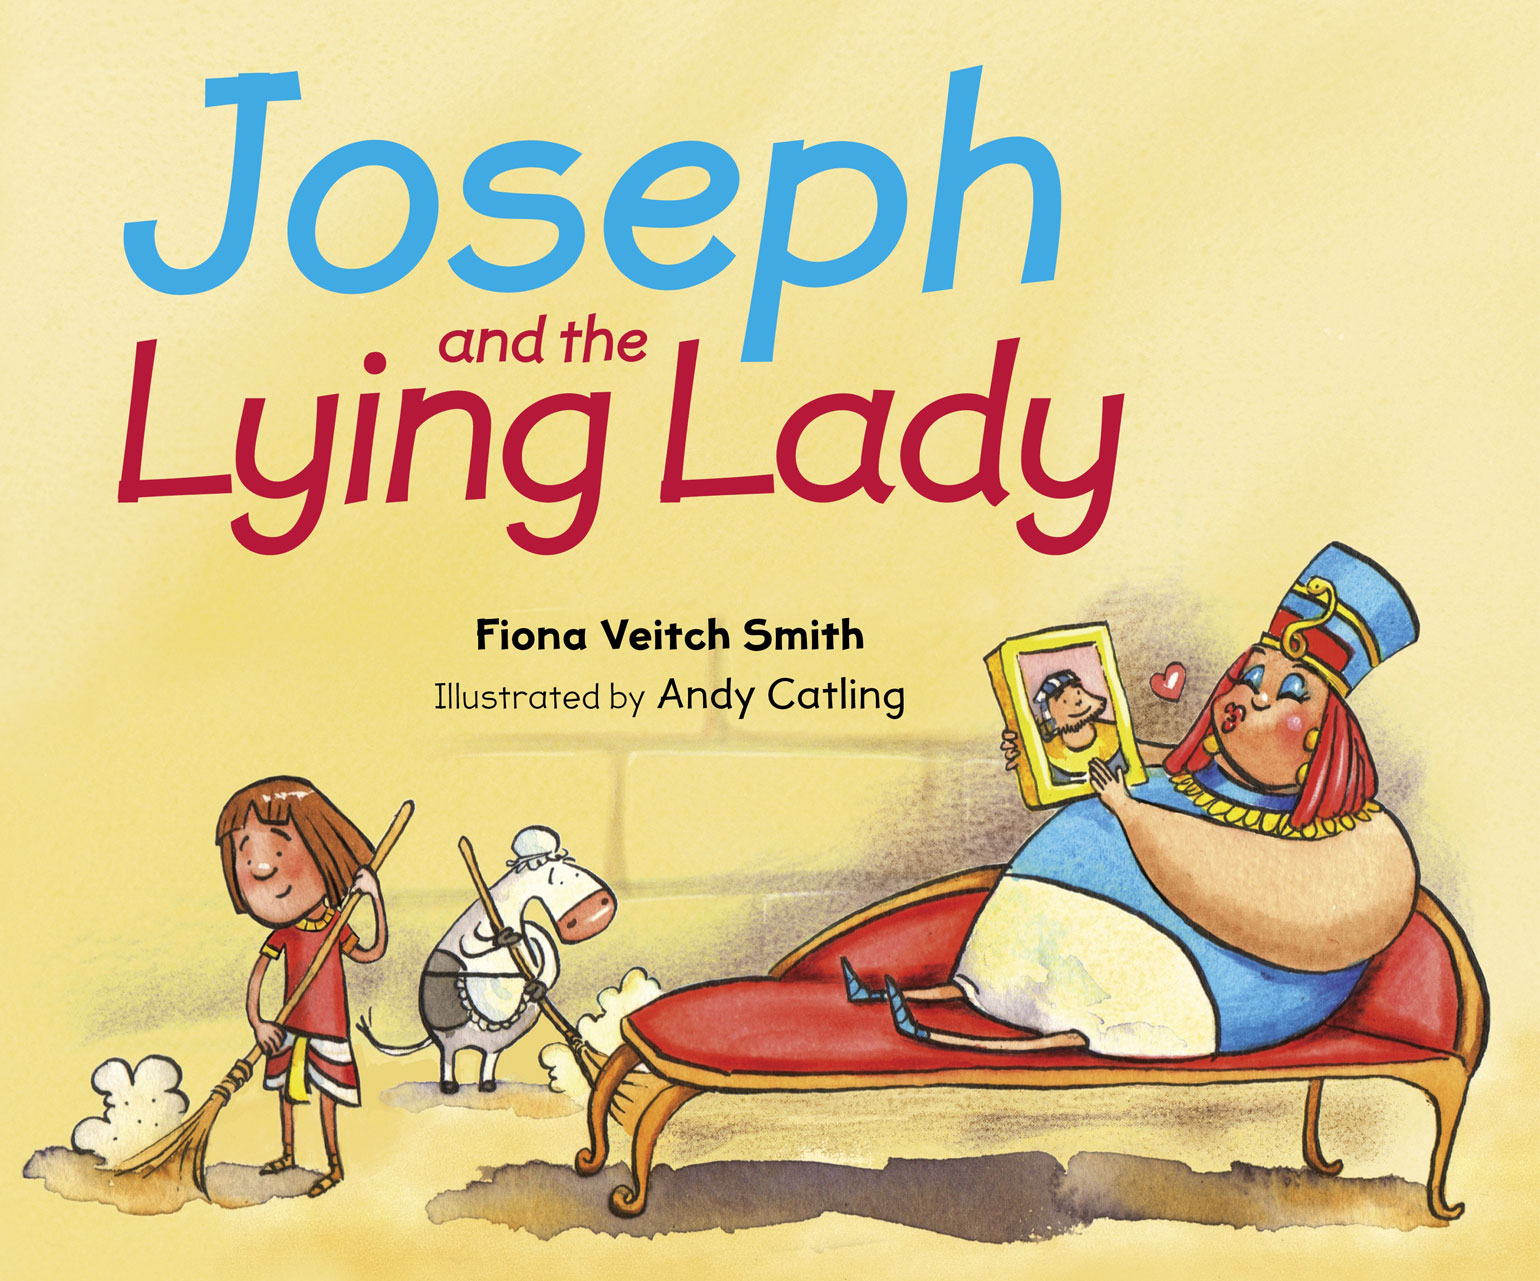 Joseph and the Lying Lady